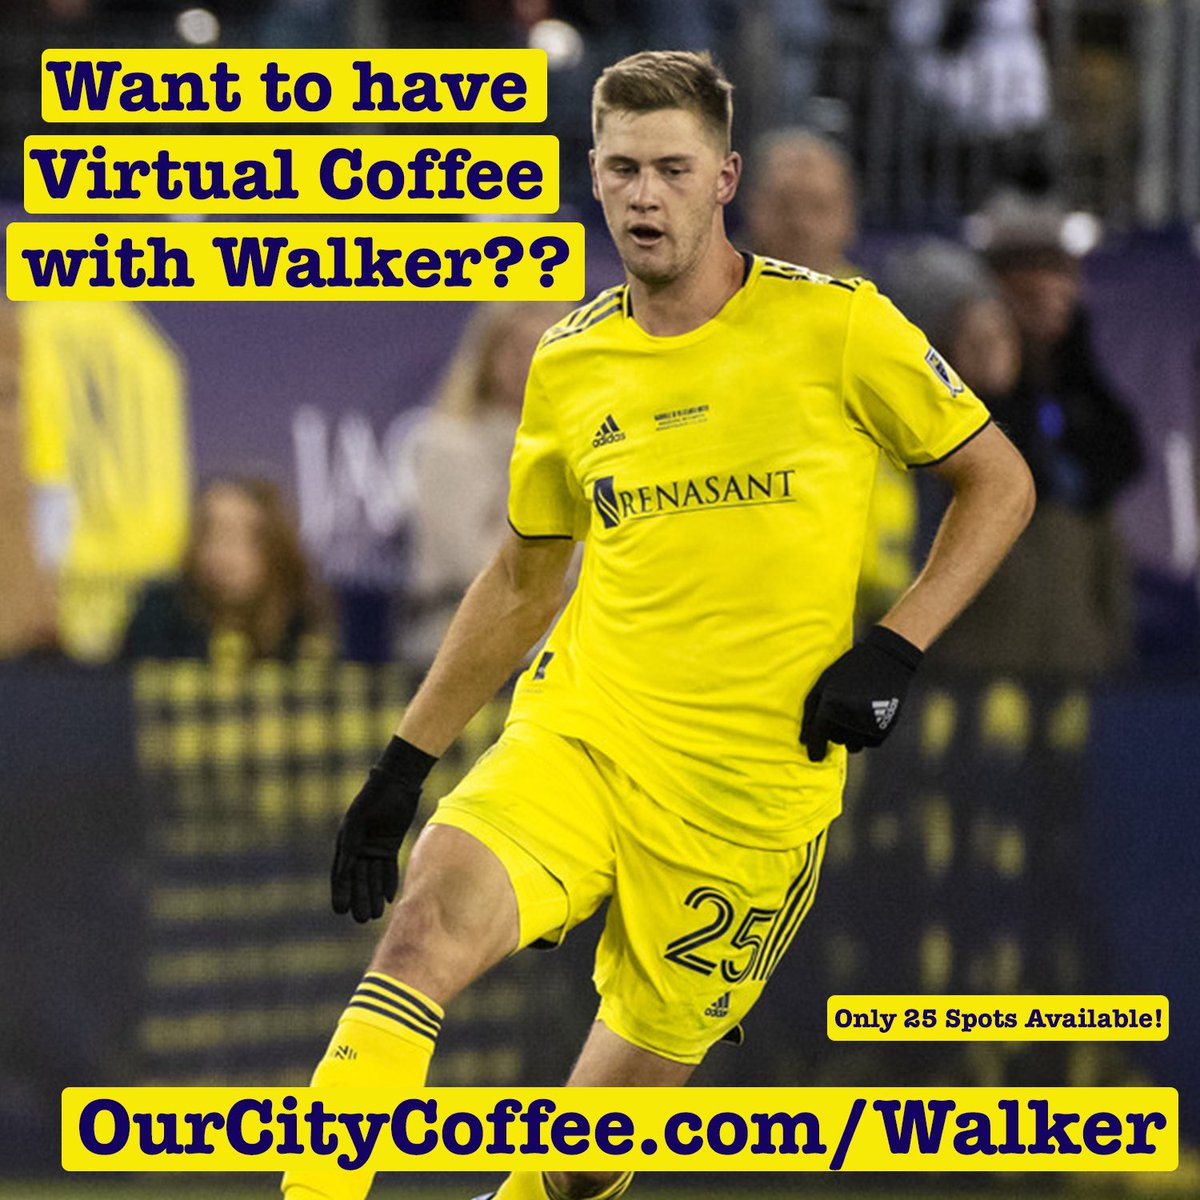 Stuck inside? Whose down for a (virtual) cup of joe  w/ @thewalkerzim ☕️?!  Super excited to announce our charitable partnership with Walker with proceeds going to @CRCNashville 🙏  Link to join us 👇  https://t.co/BdPE1mO1Qx https://t.co/yQ66uZOcN5